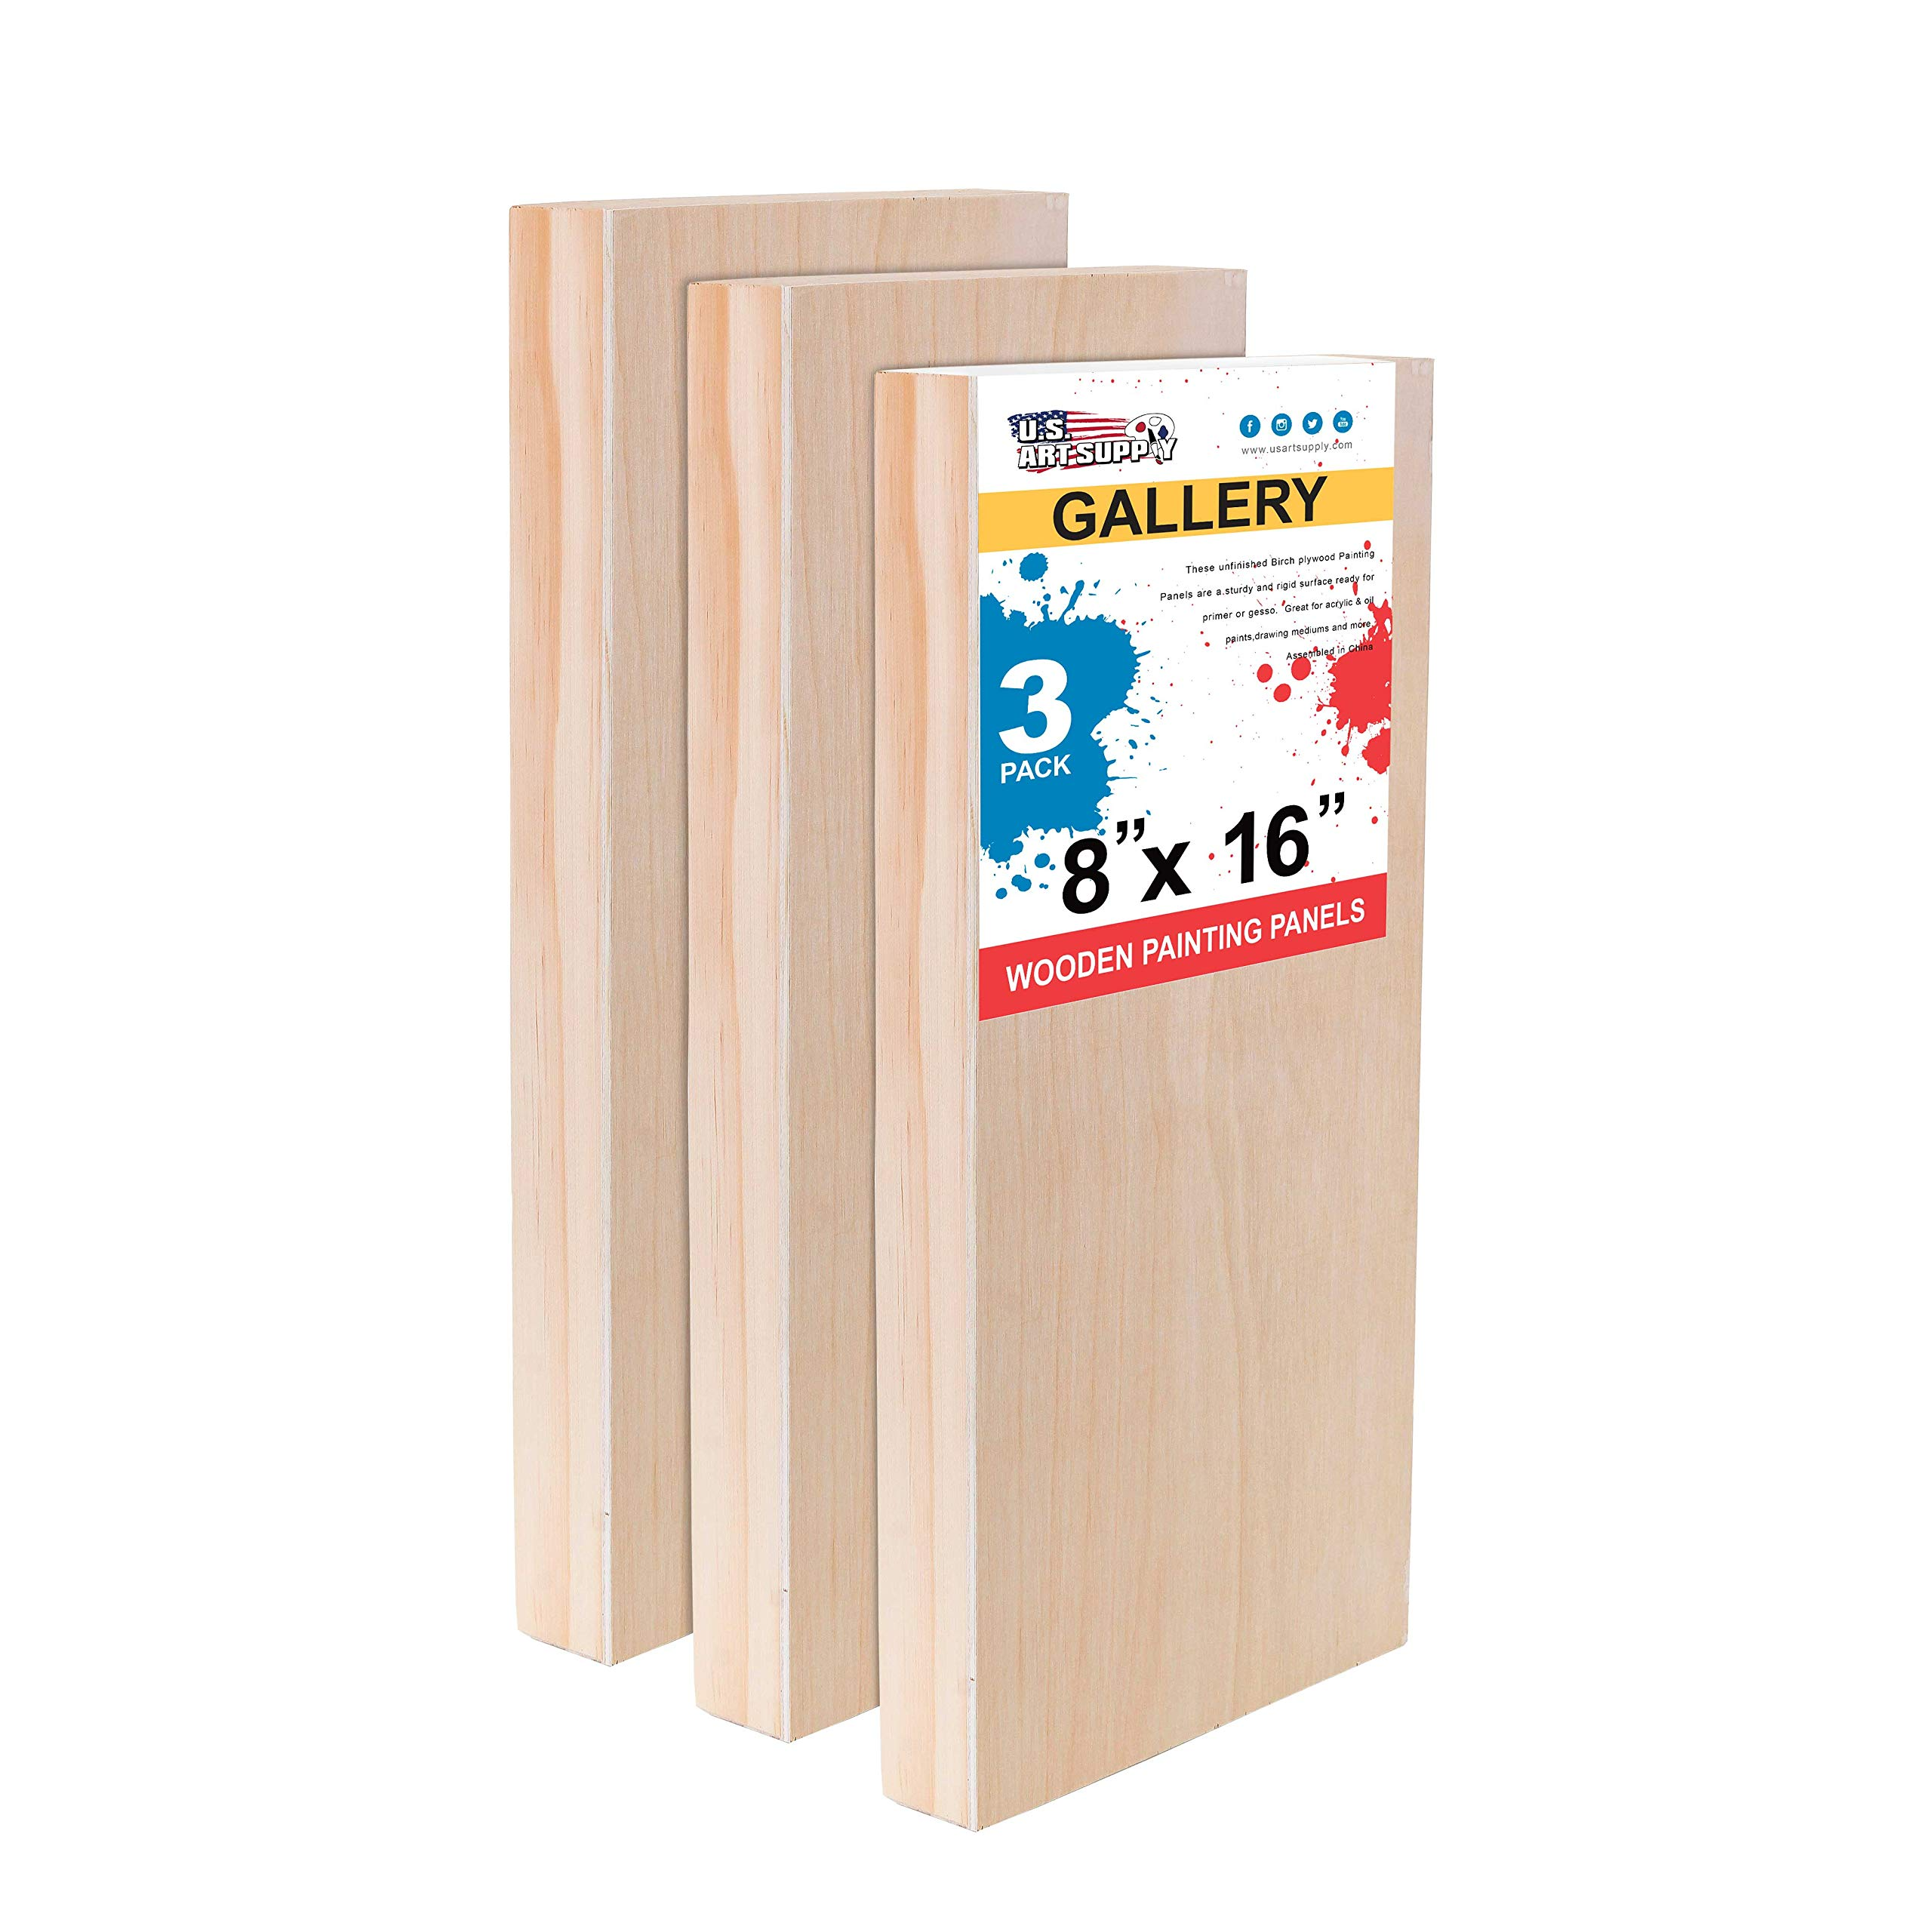 U.S. Art Supply 8'' x 16'' Birch Wood Paint Pouring Panel Boards, Gallery 1-1/2'' Deep Cradle (Pack of 3) - Artist Depth Wooden Wall Canvases - Painting Mixed-Media Craft, Acrylic, Oil, Encaustic by U.S. Art Supply